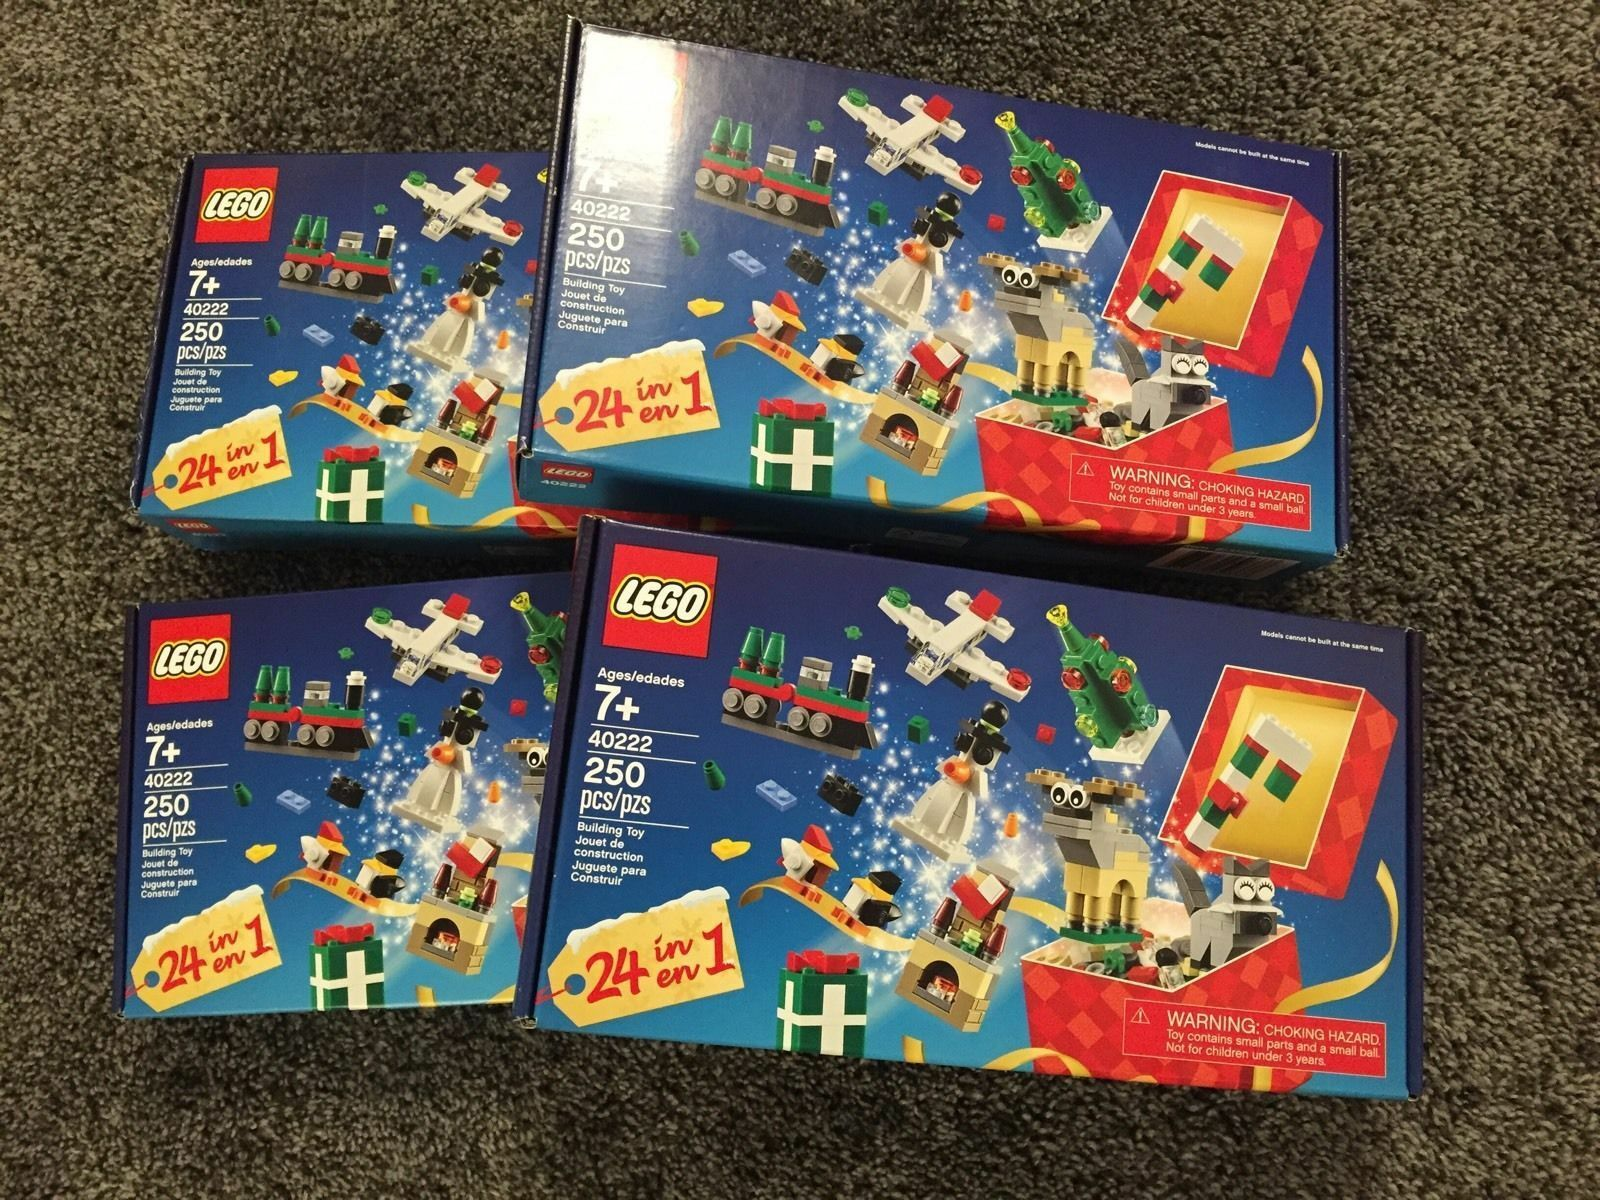 4x Lego 40222 Promotional Exclusive 24-In-1 Christmas Christmas Christmas Countdown Set 4 Sets b25c58